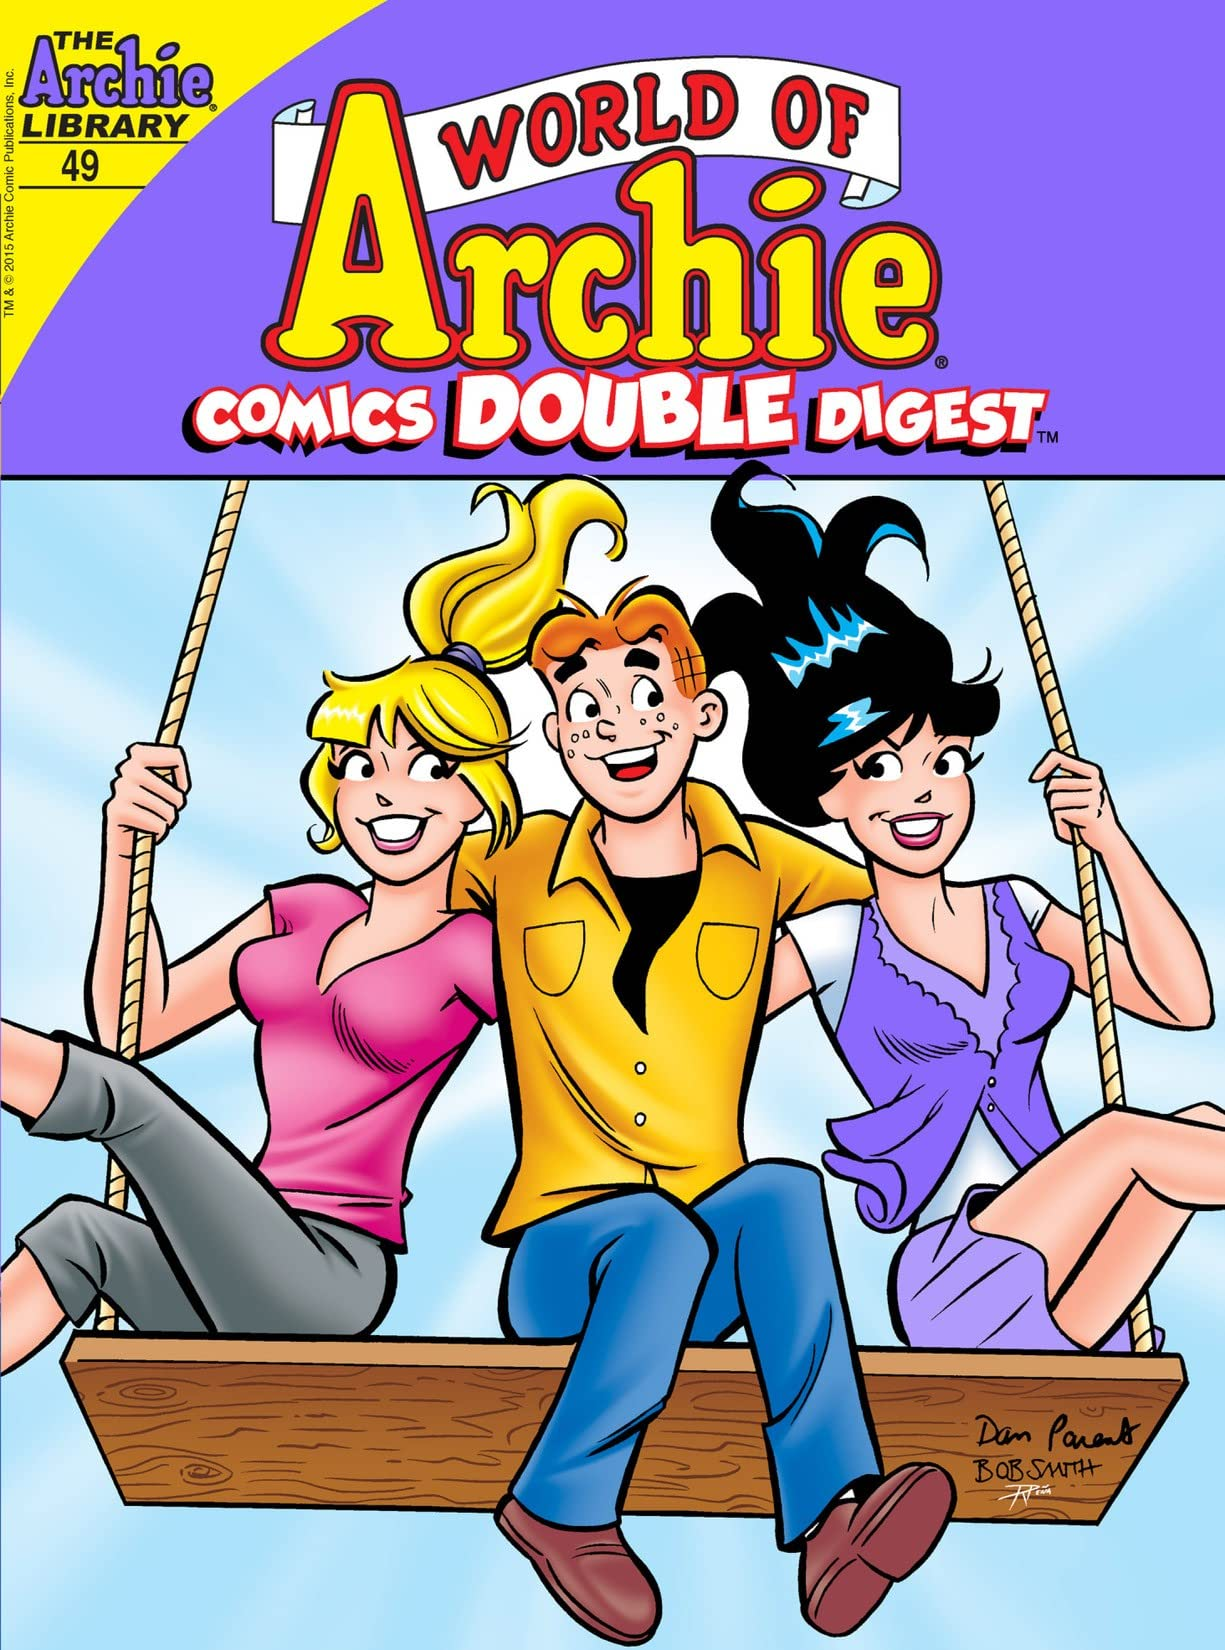 World of Archie Comics Double Digest #49